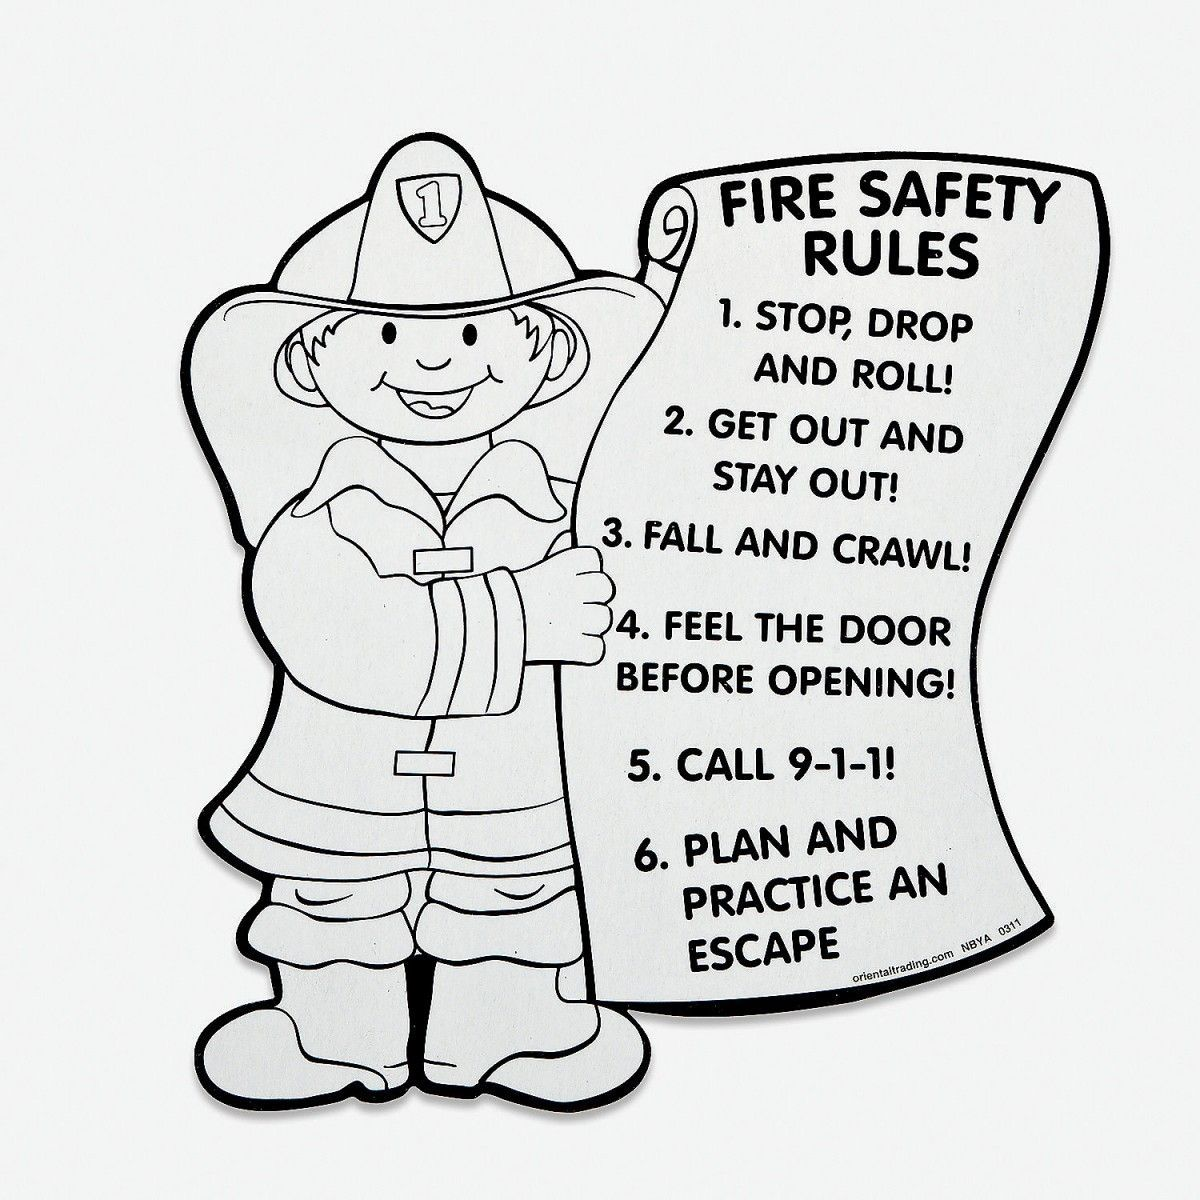 Unique Fire Safety Coloring Pages For Free Colouring Pages With Fire Safety Coloring Pages Fire Safety Fire S In 2021 Fire Safety Fire Safety For Kids Fire Safety Free